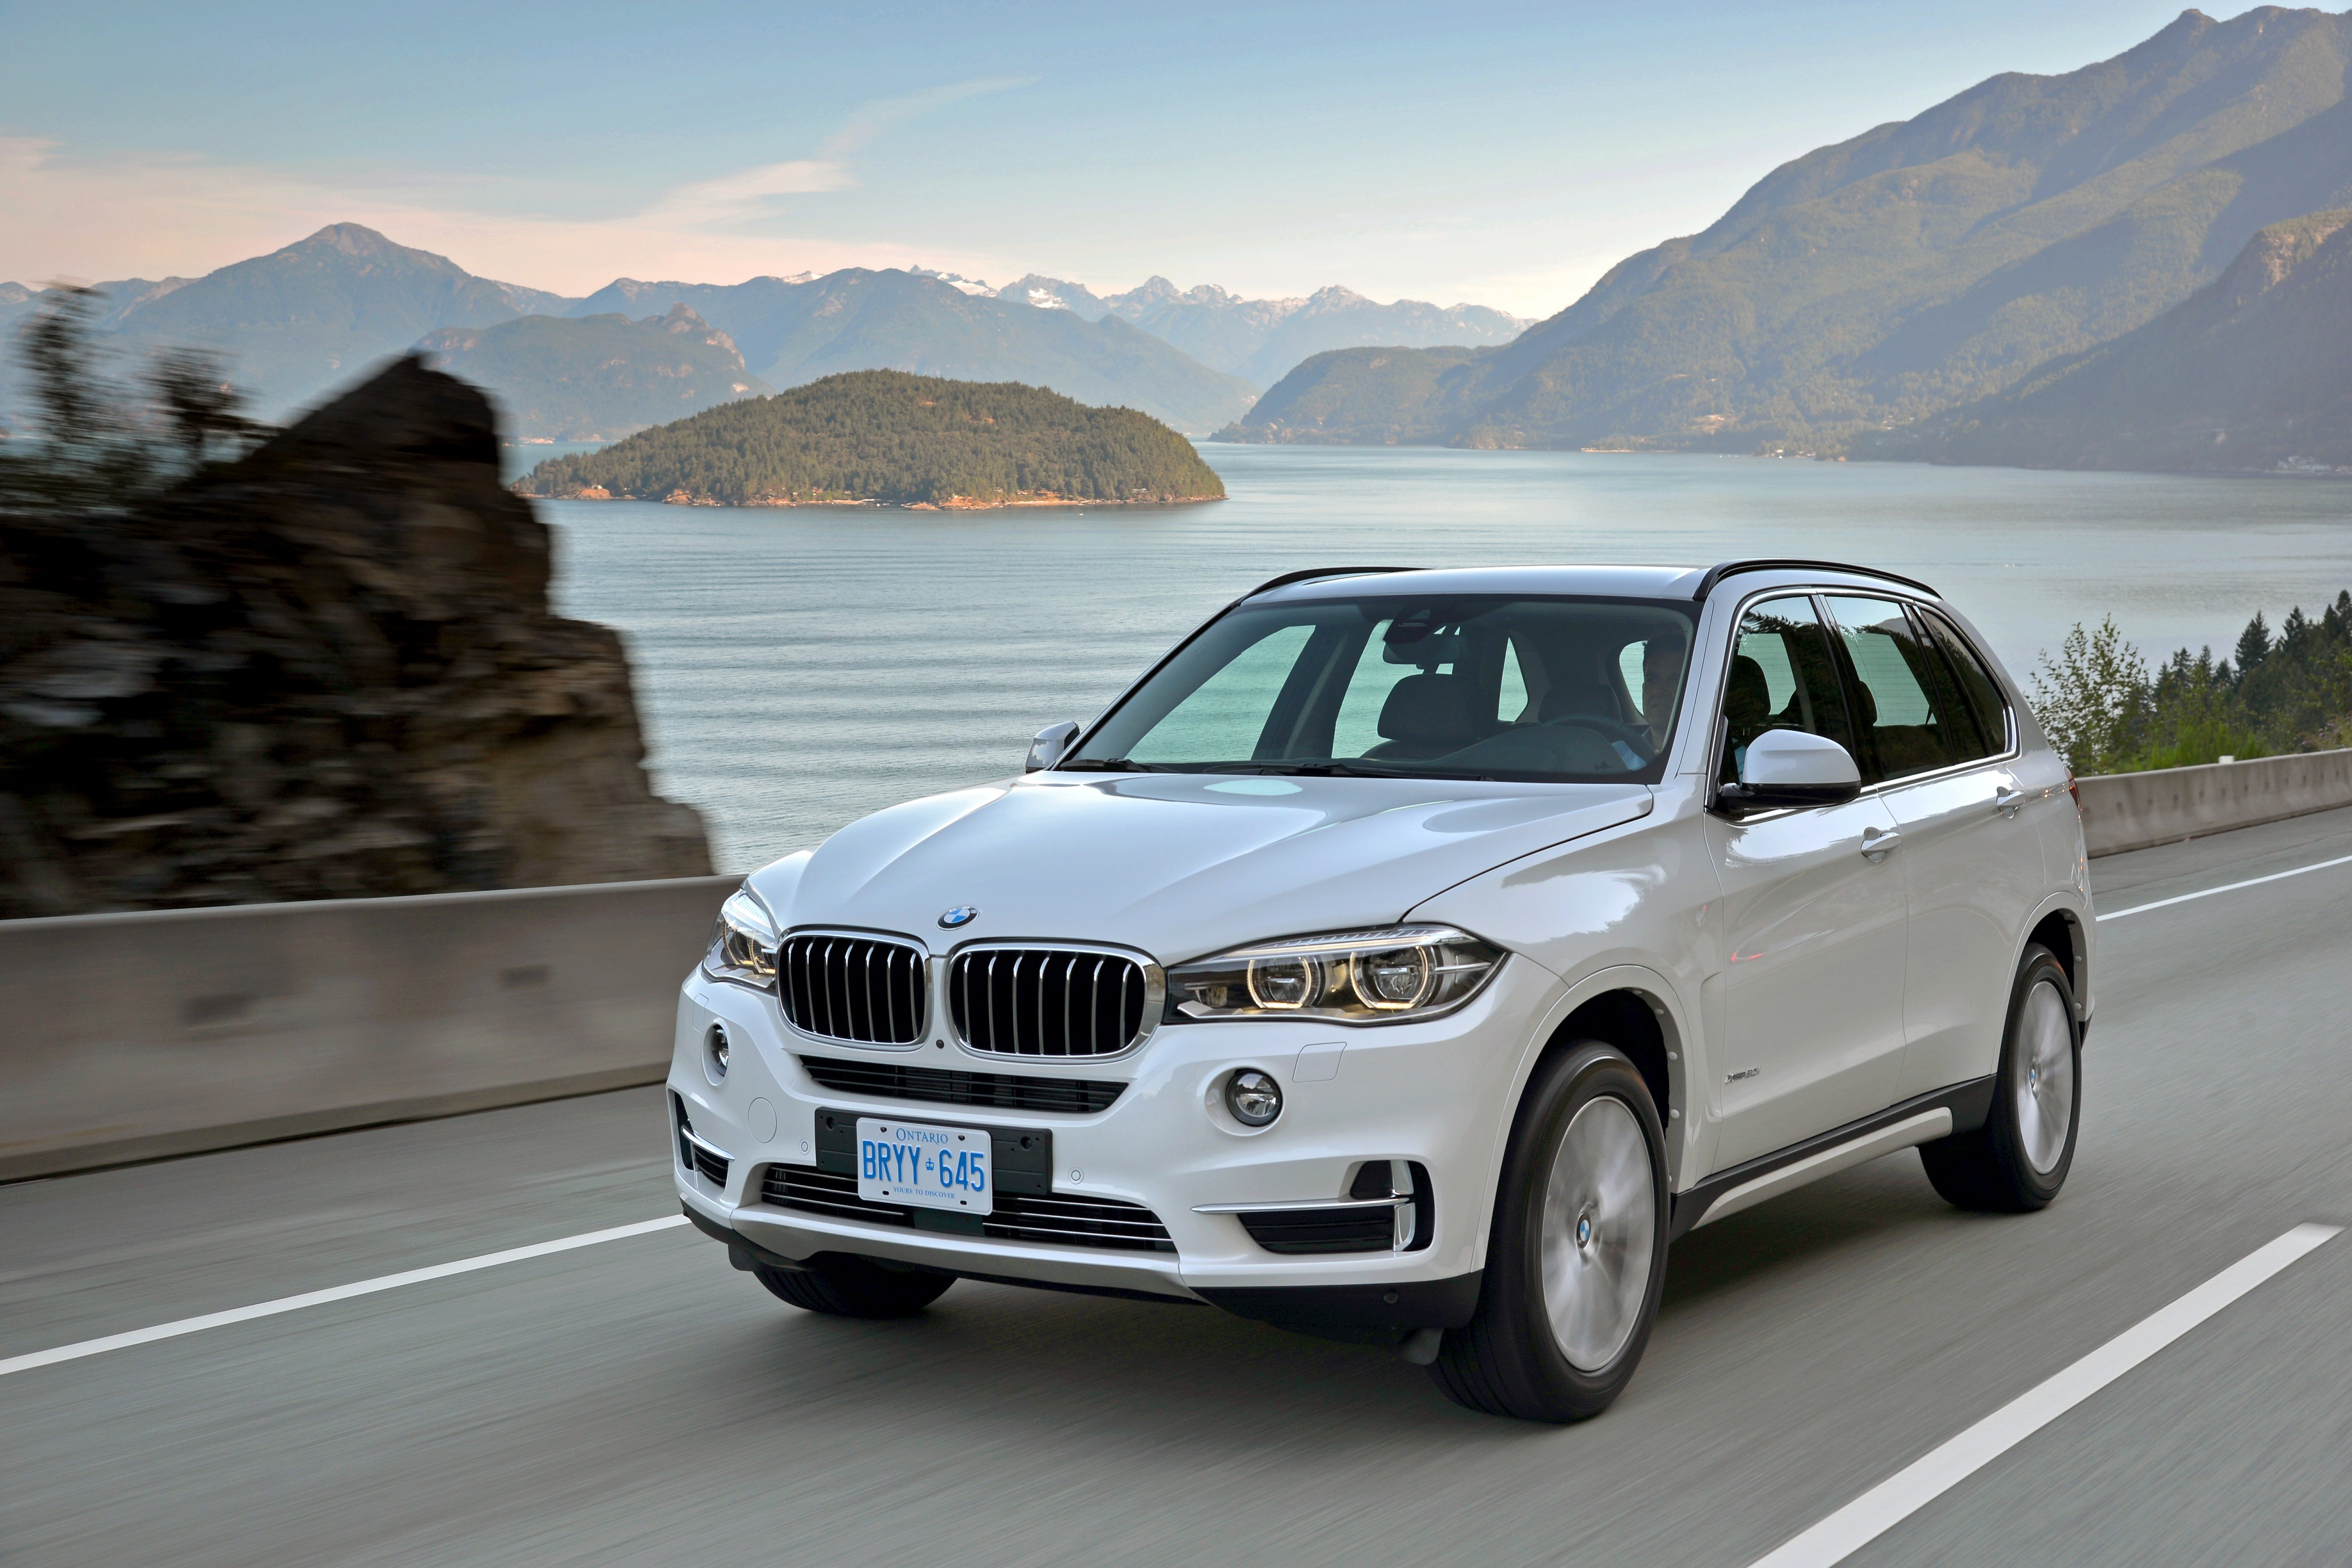 30 Years Of Bmw All Wheel Drive Cars Going From Mechanical To Hybrid Systems